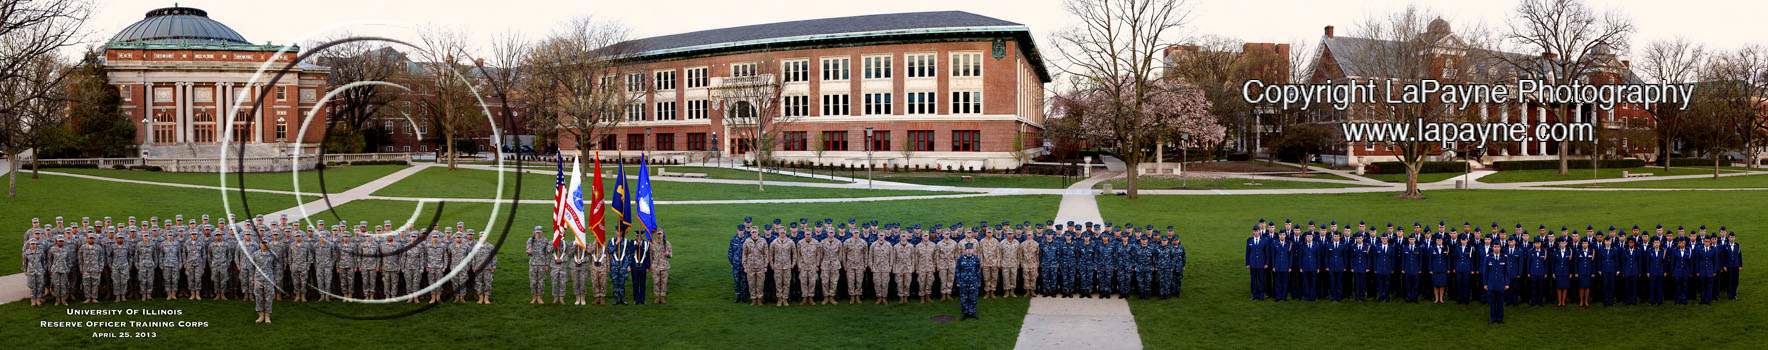 Illinois ROTC 2013 Panorama